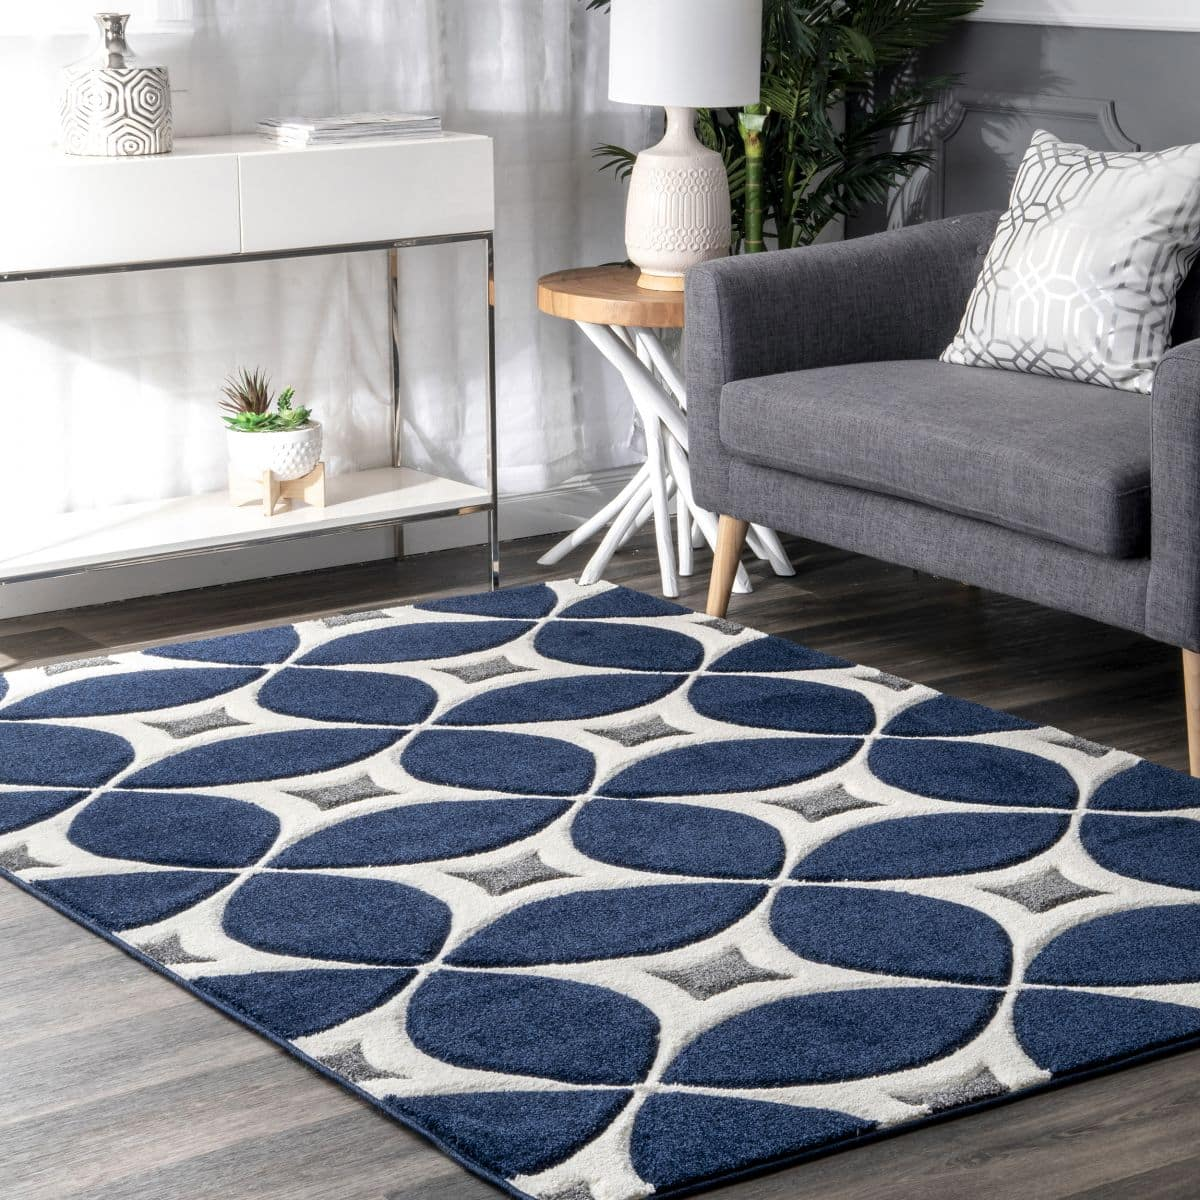 Navy, Grey and White Rug for Dark Wood Flooring